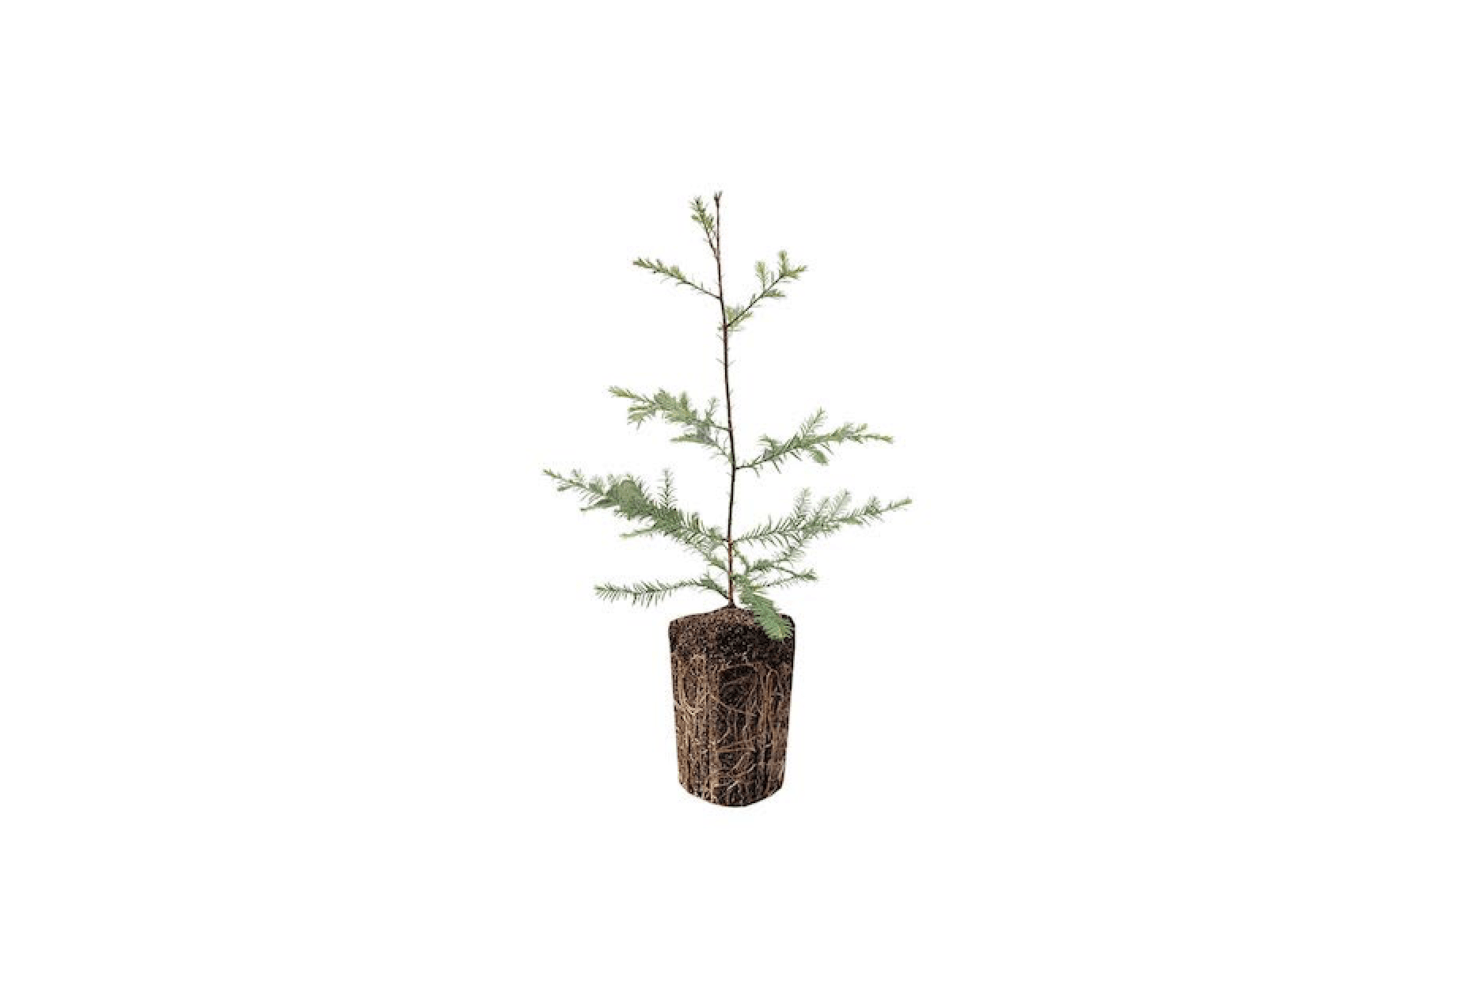 A Charlie Brown Christmas Tree That Can Change Your Life - Gardenista